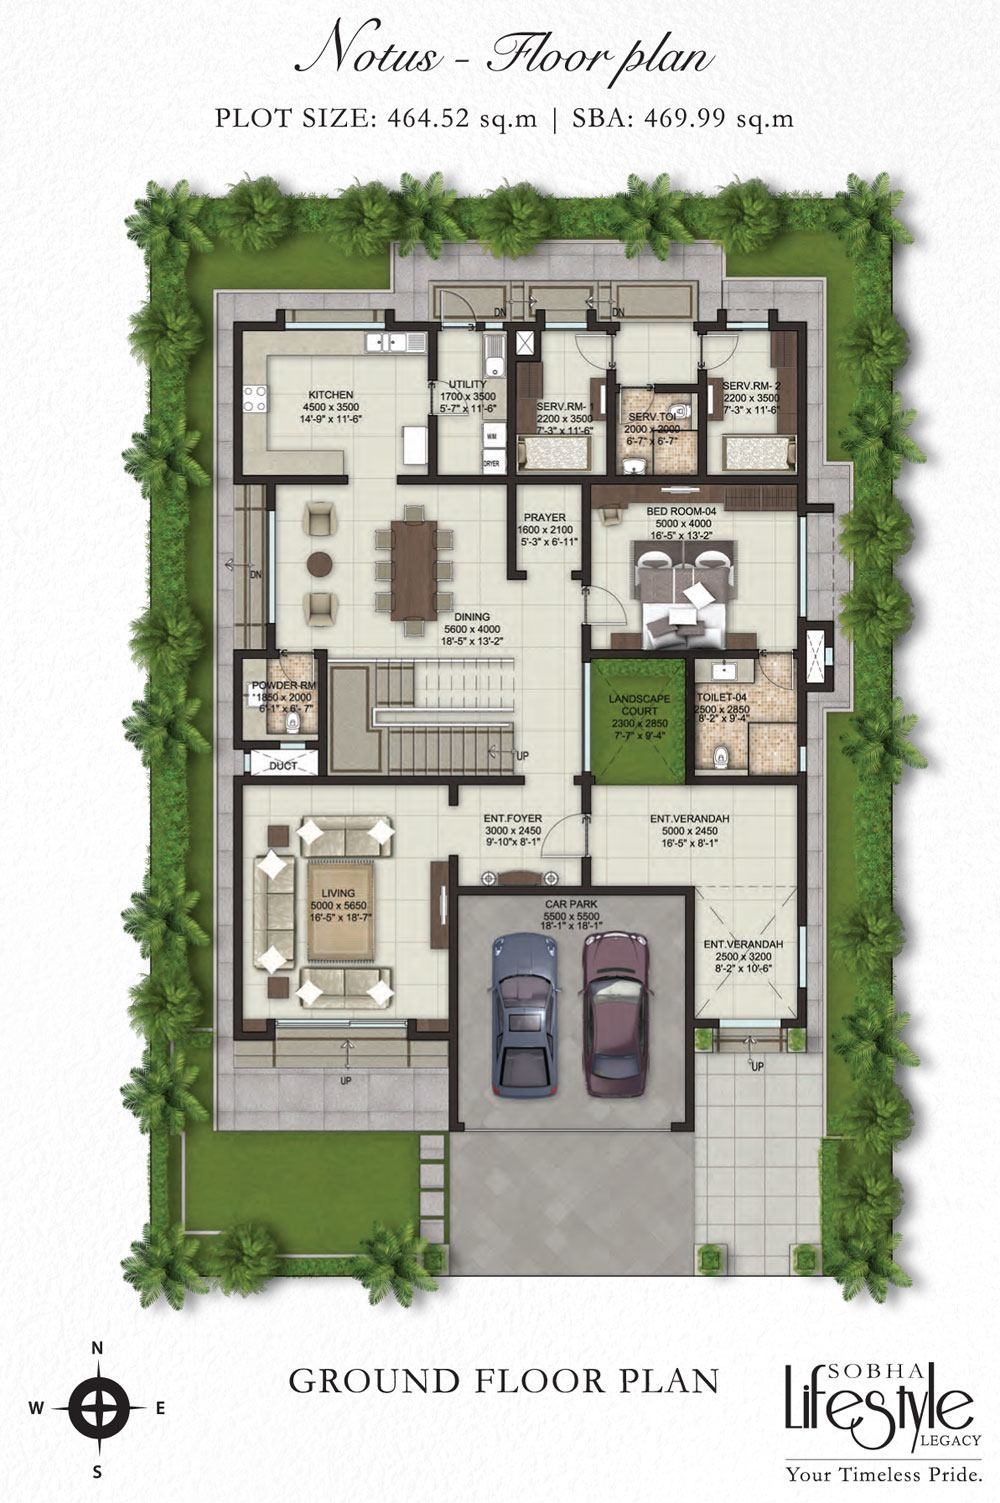 sobha lifestyle villa ground floor plans